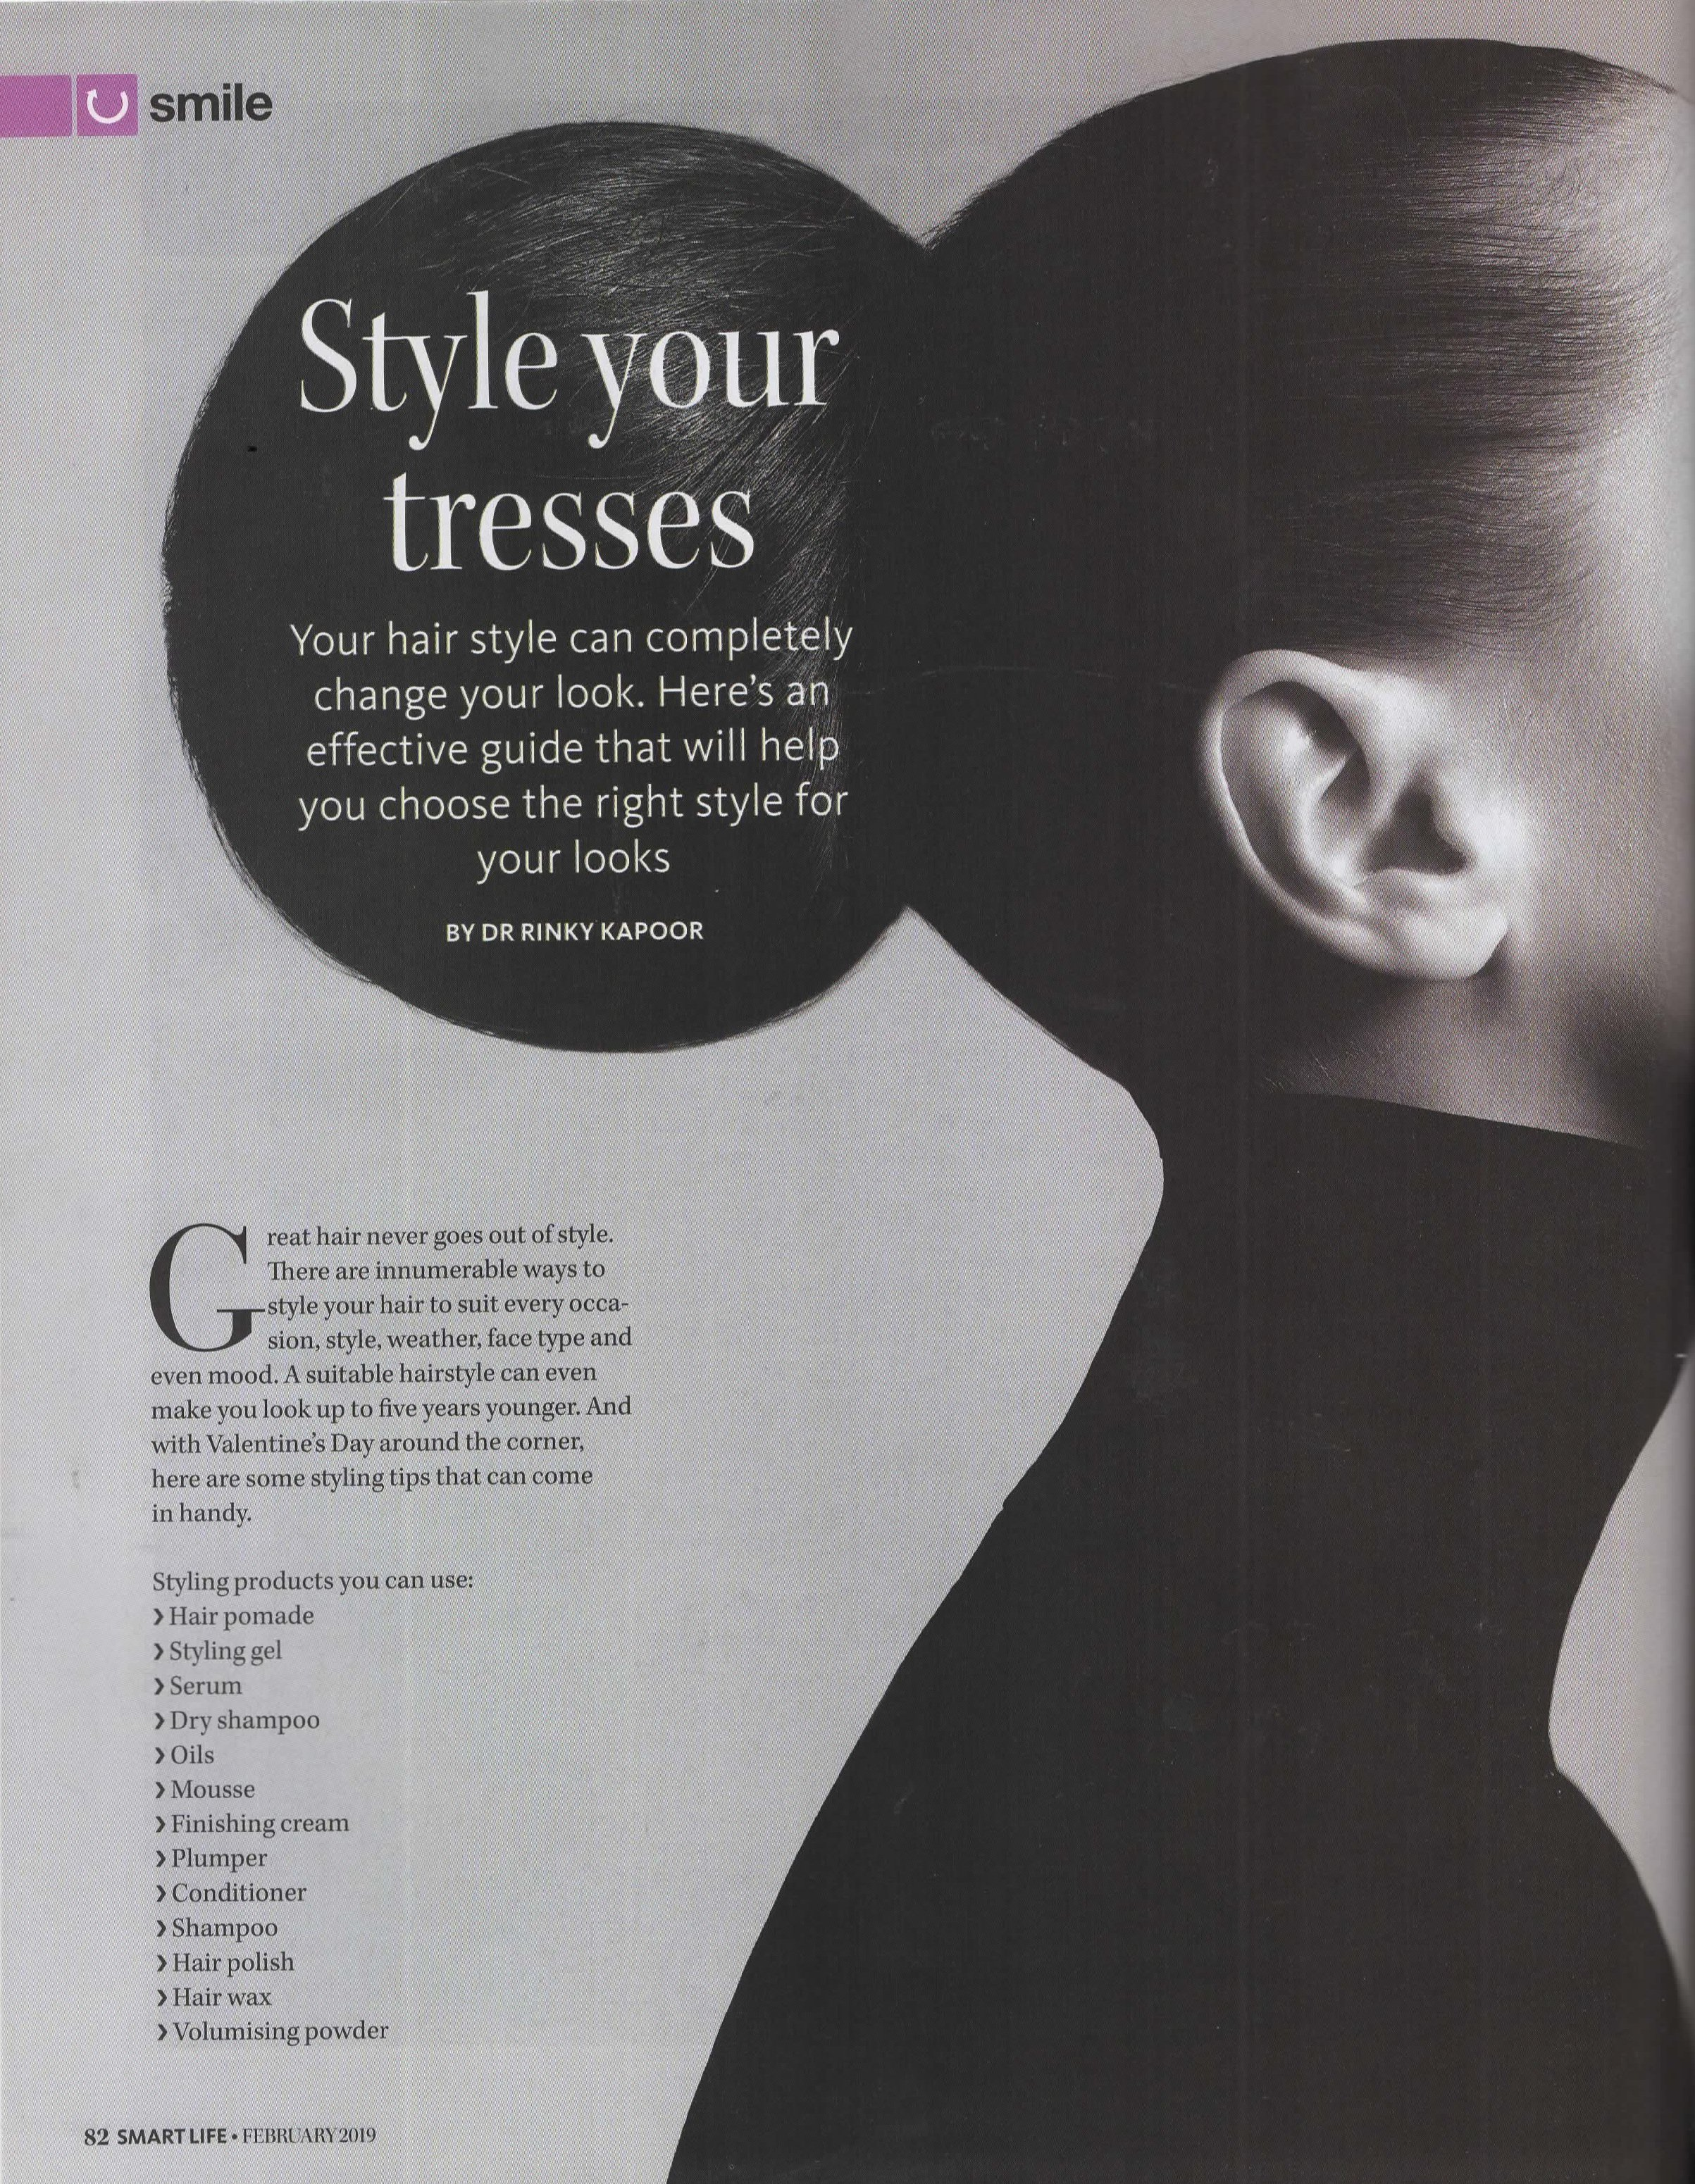 Style Your Tresses - Smart Life